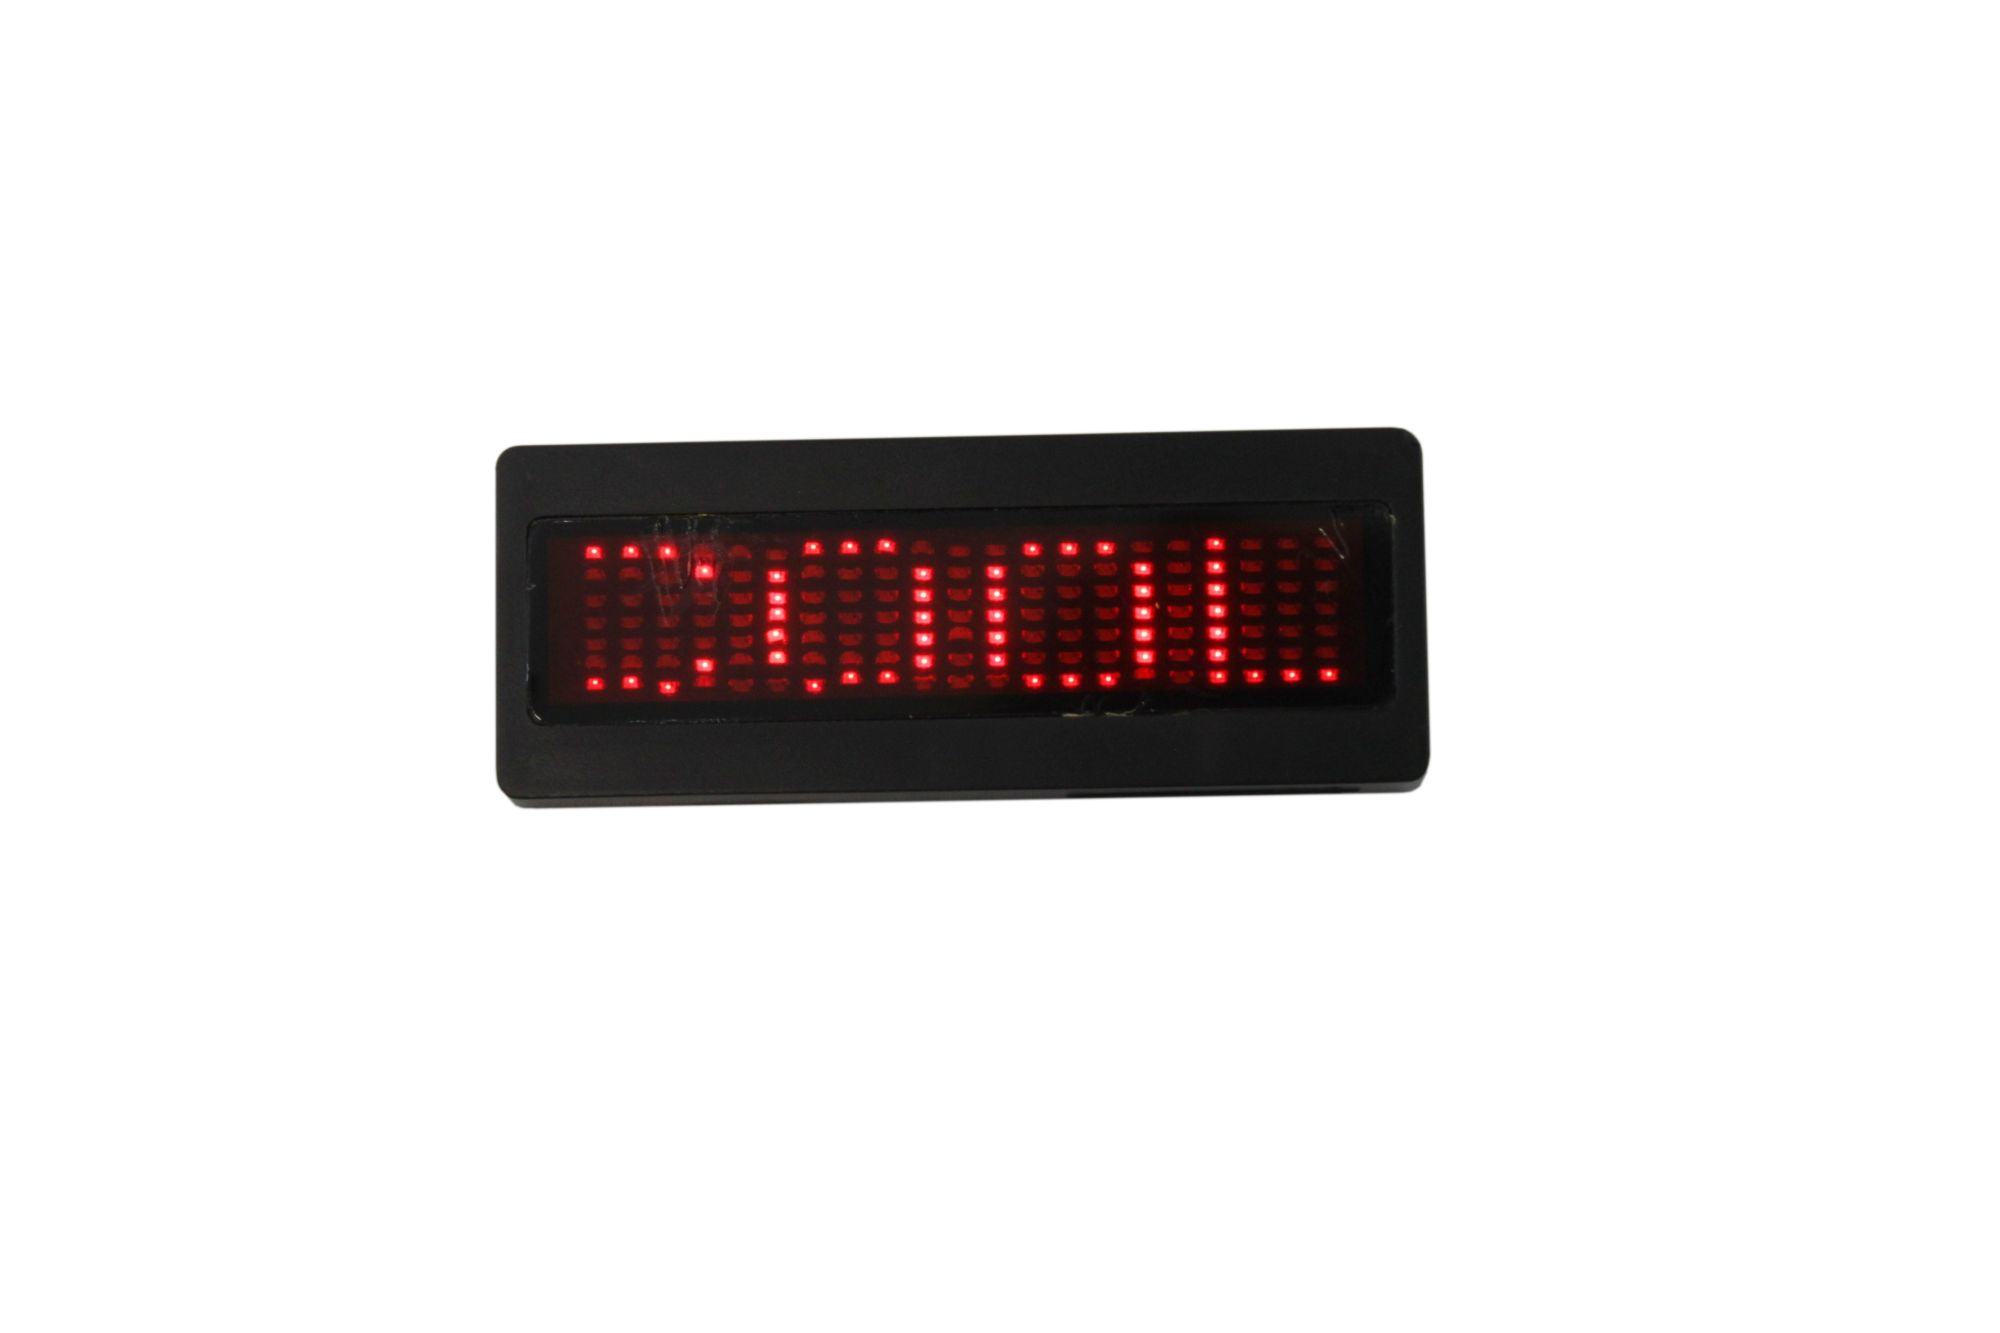 Bolan Programmable Scrolling Red LED Name Tag, Reusable Name Badge, PriceTag rechargeable ID Tag office magnetic name tags,Digital Sign